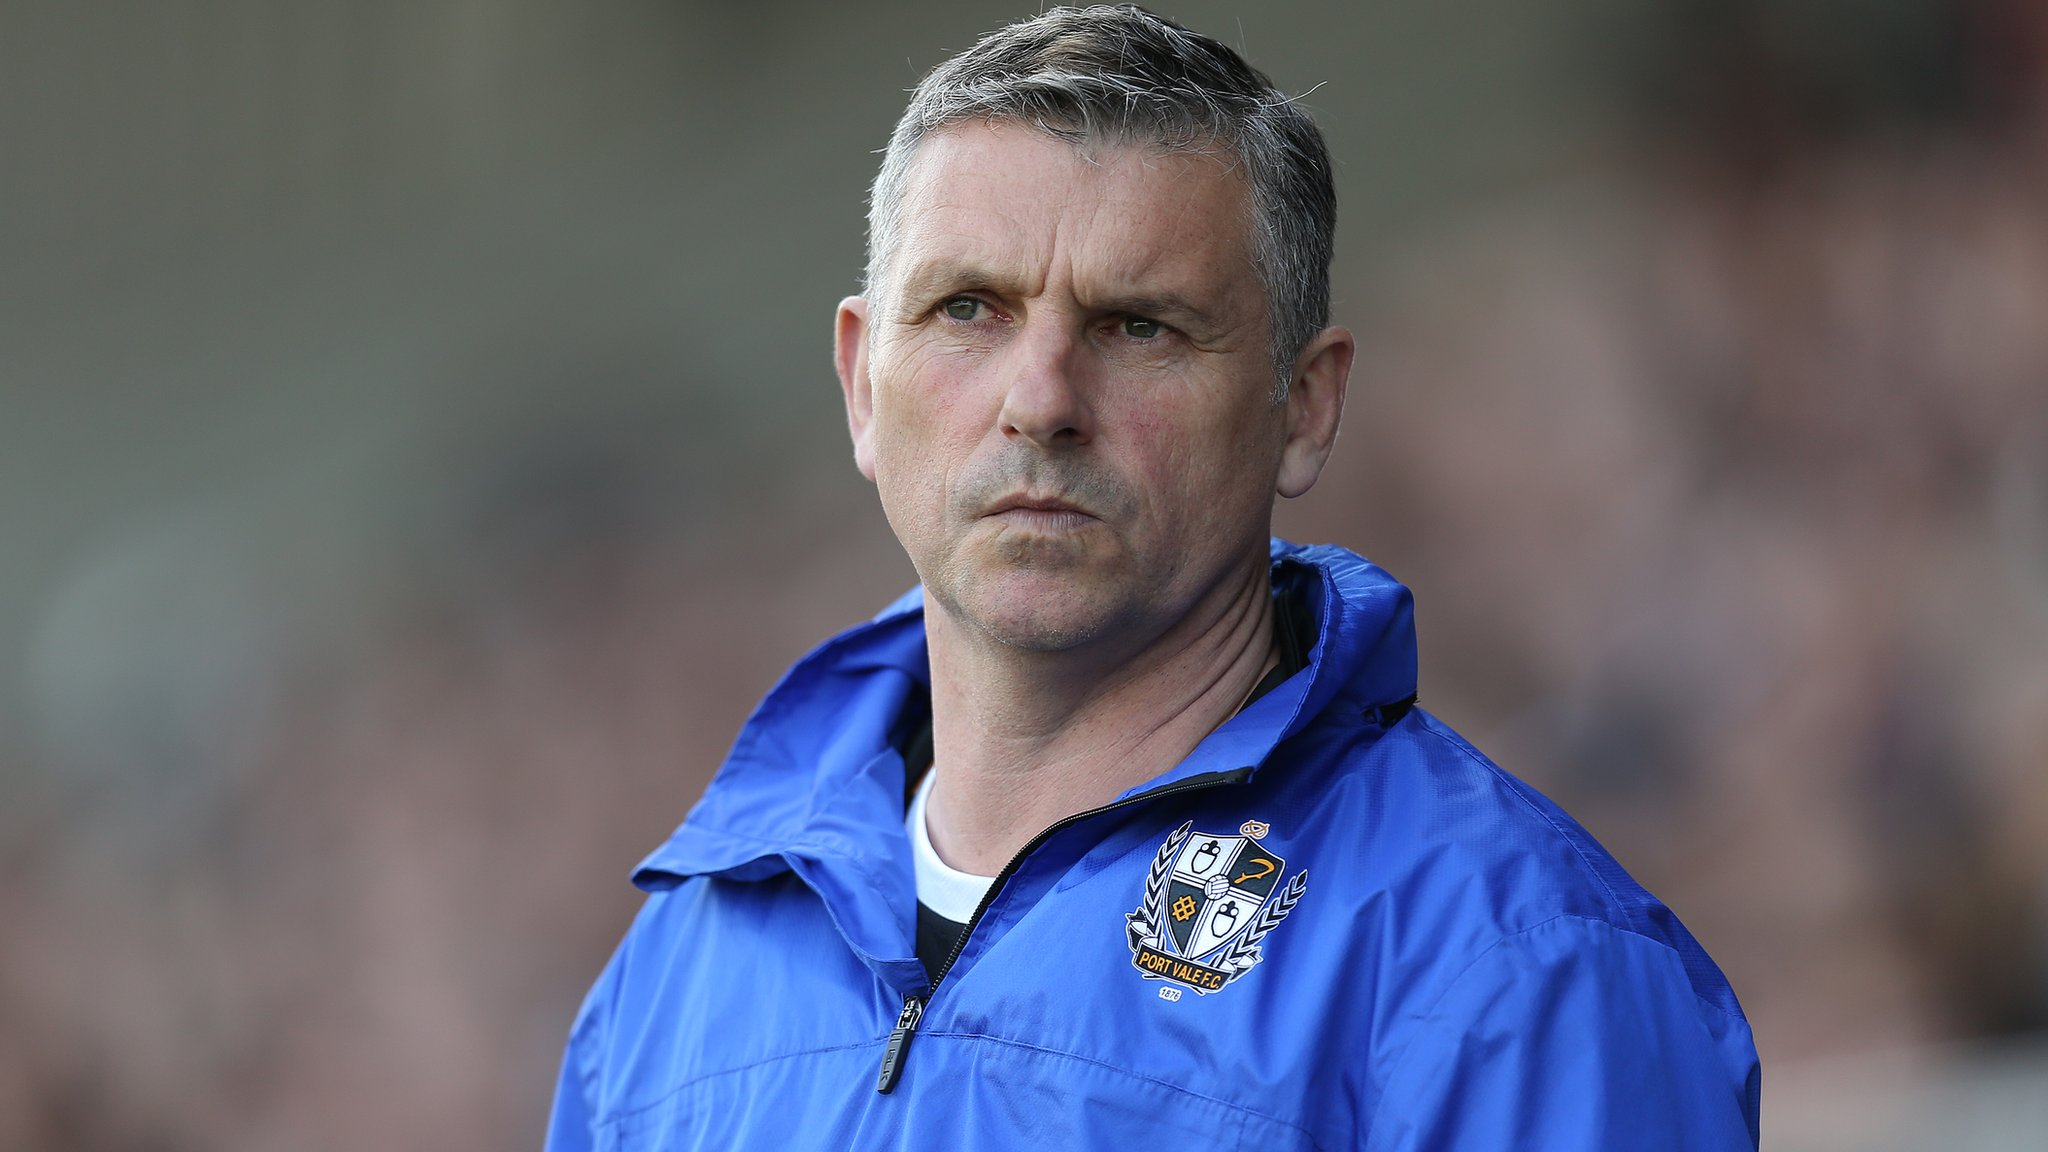 Port Vale: John Askey to stay as manager of League Two club on three-year deal